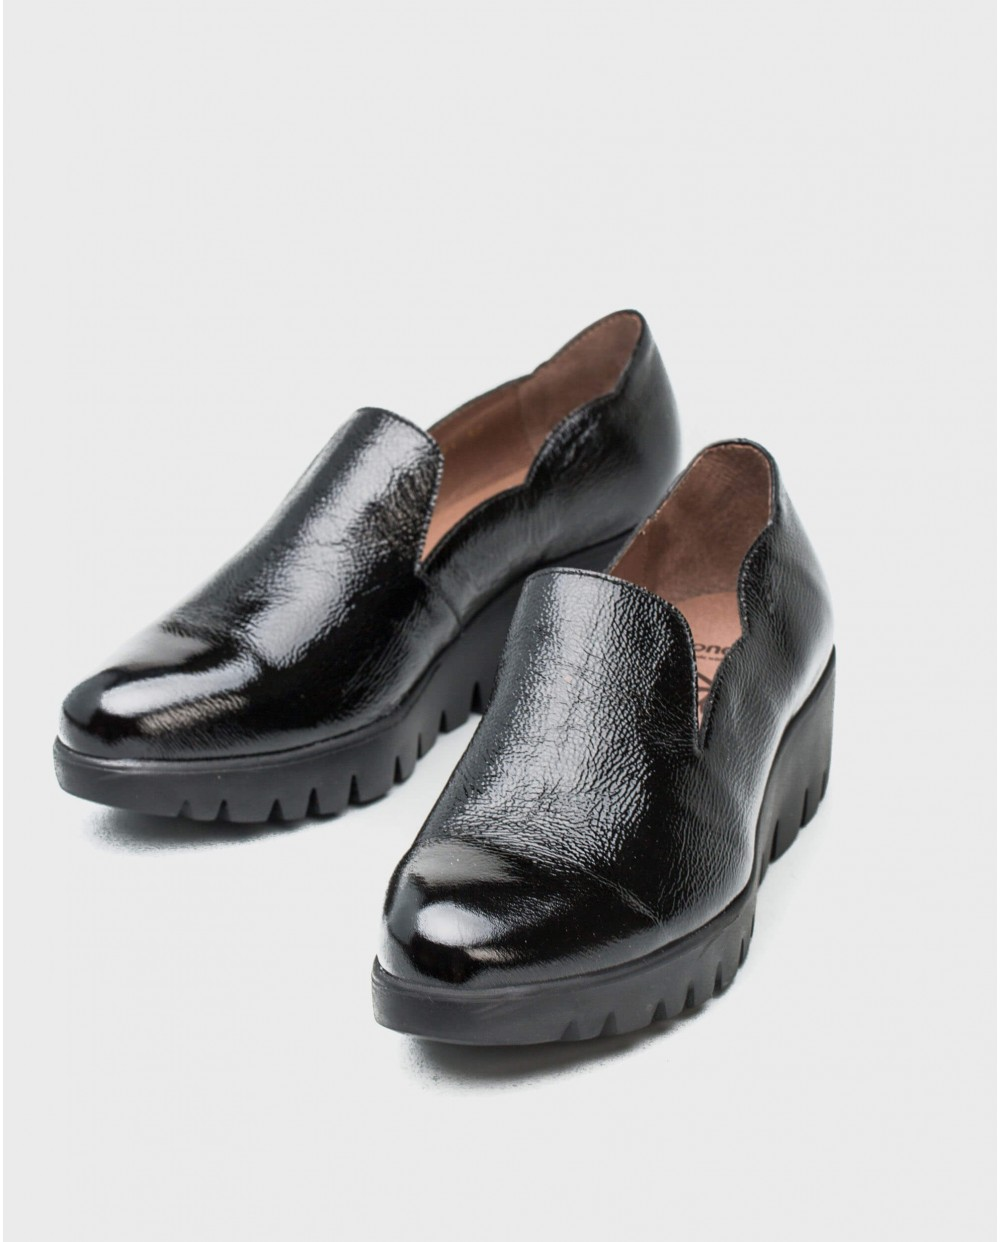 Wonders-Wedges-leather moccasins with wave detail